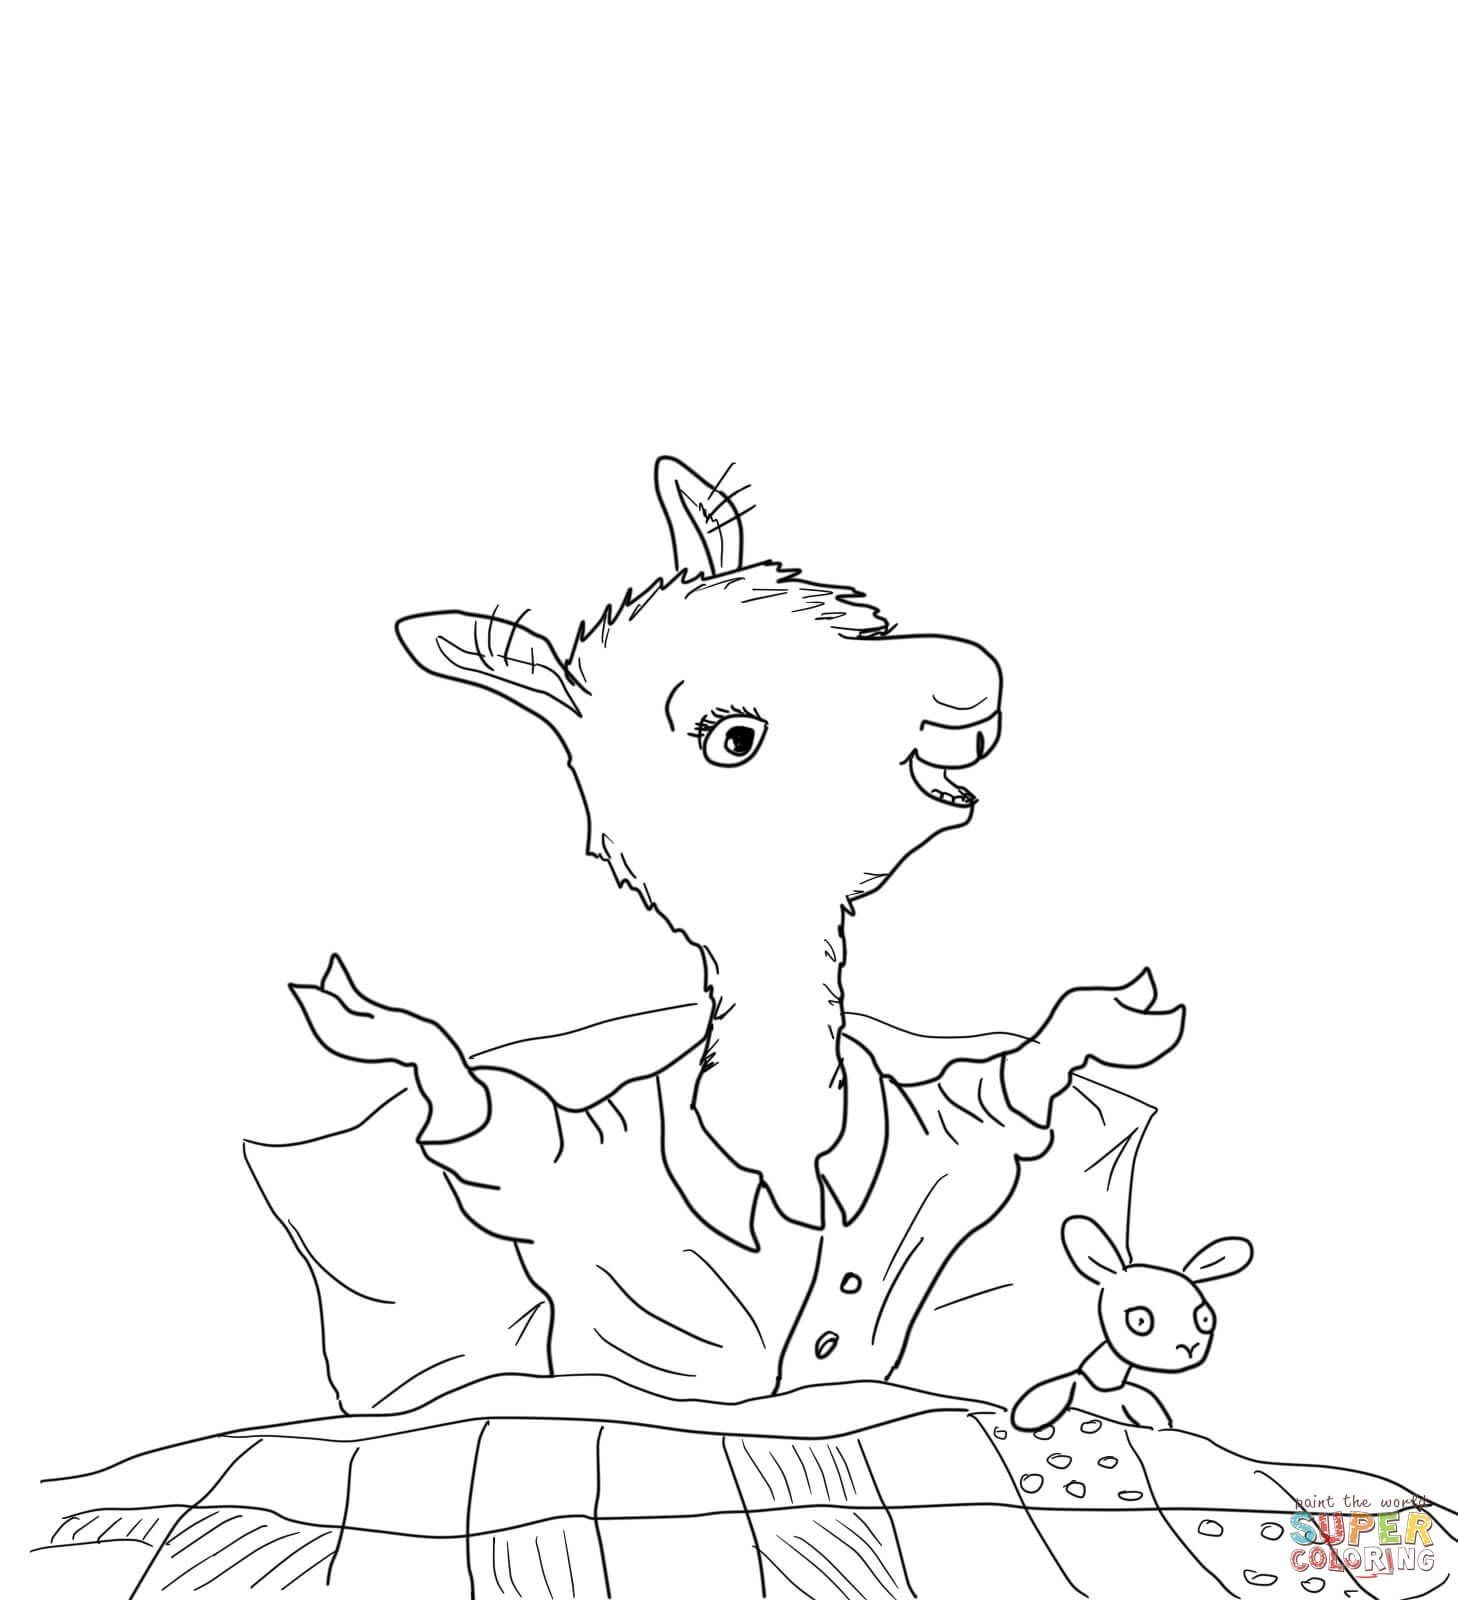 Pin By Happykidsactivity On Coloring For Kids Collection Llama